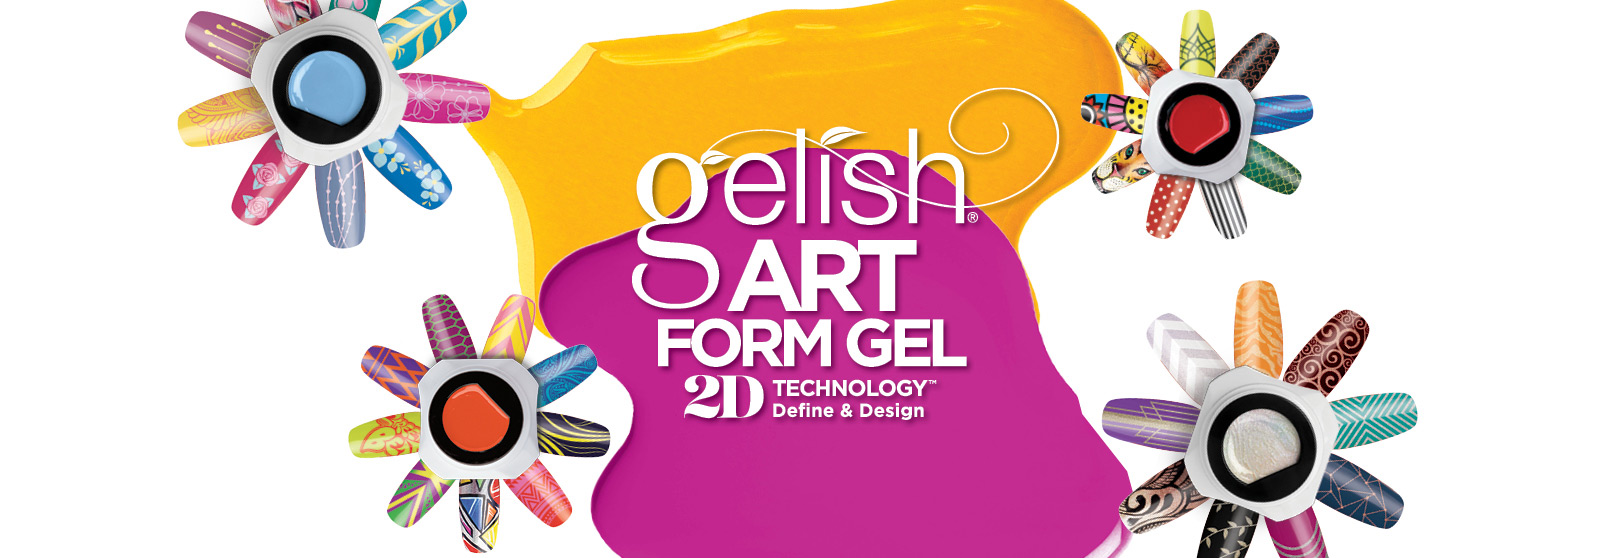 Gelish Art Form Gel - One Stroke True Color